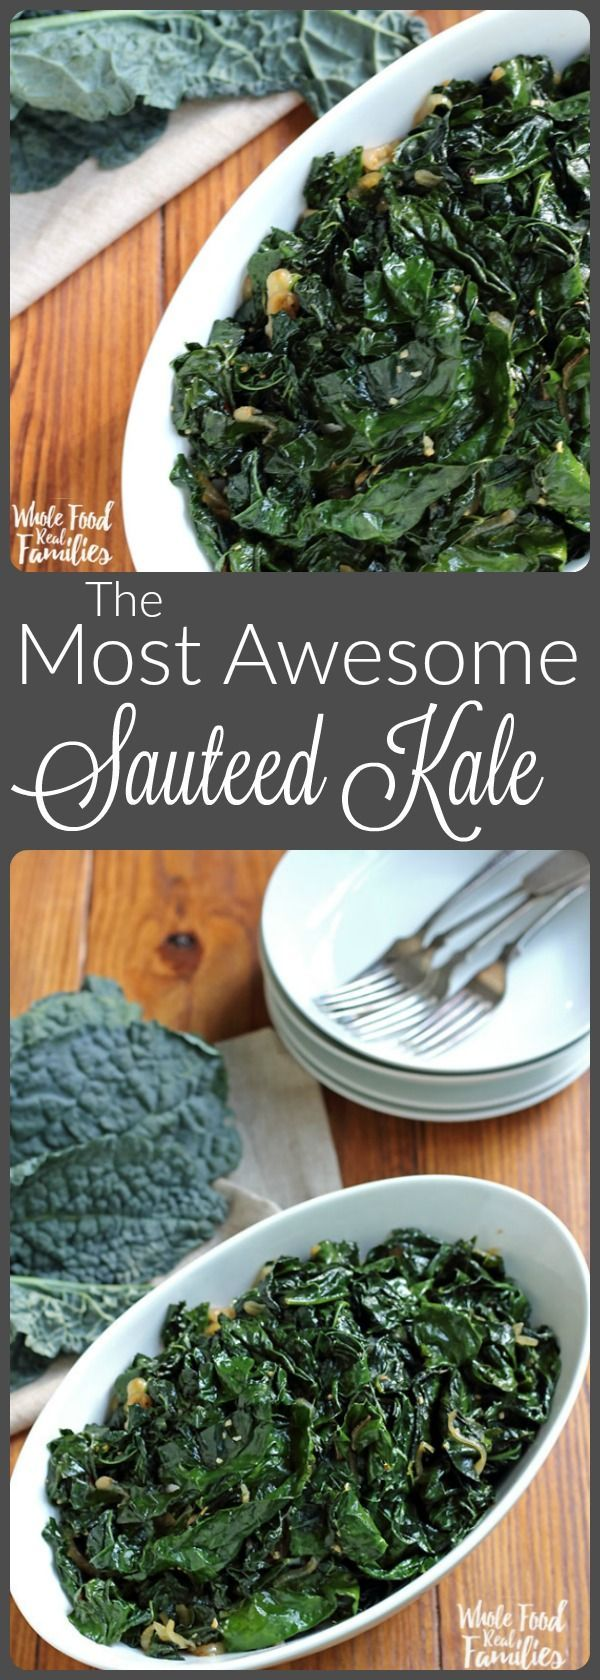 The Most Awesome Sauteed Kale! This is the number one recipe at Whole Food | Real Families for 2 years running. Turn your kale-haters into kale-lovers!  @wholefoodrealfa